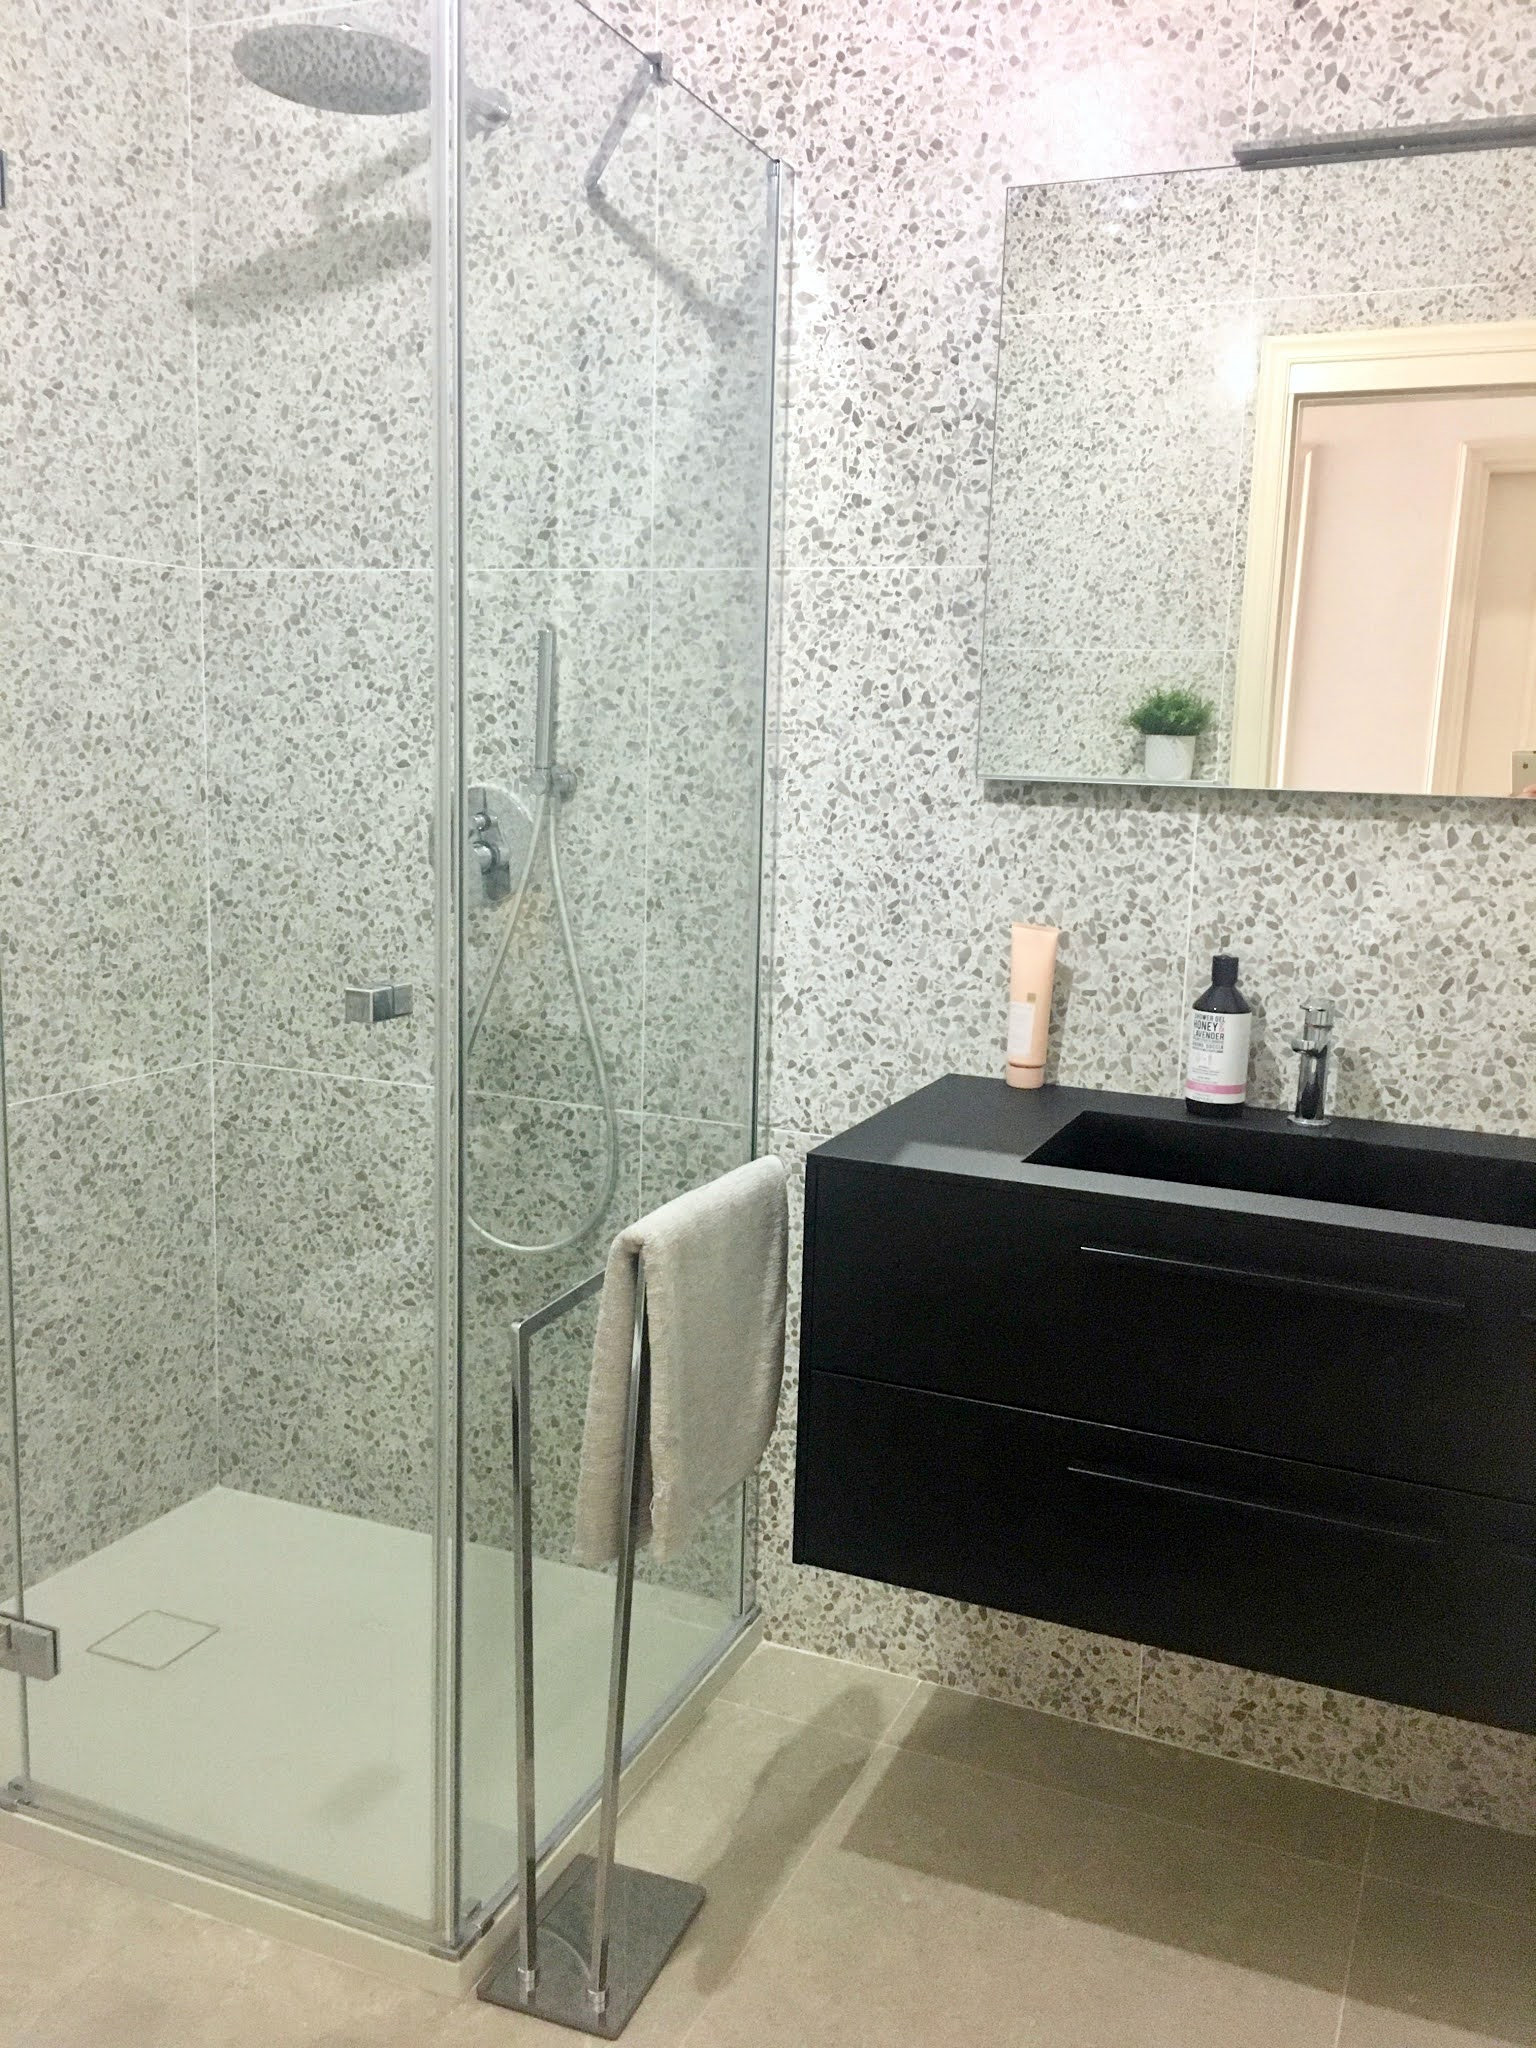 Bathroom shower terrazzo grey tile